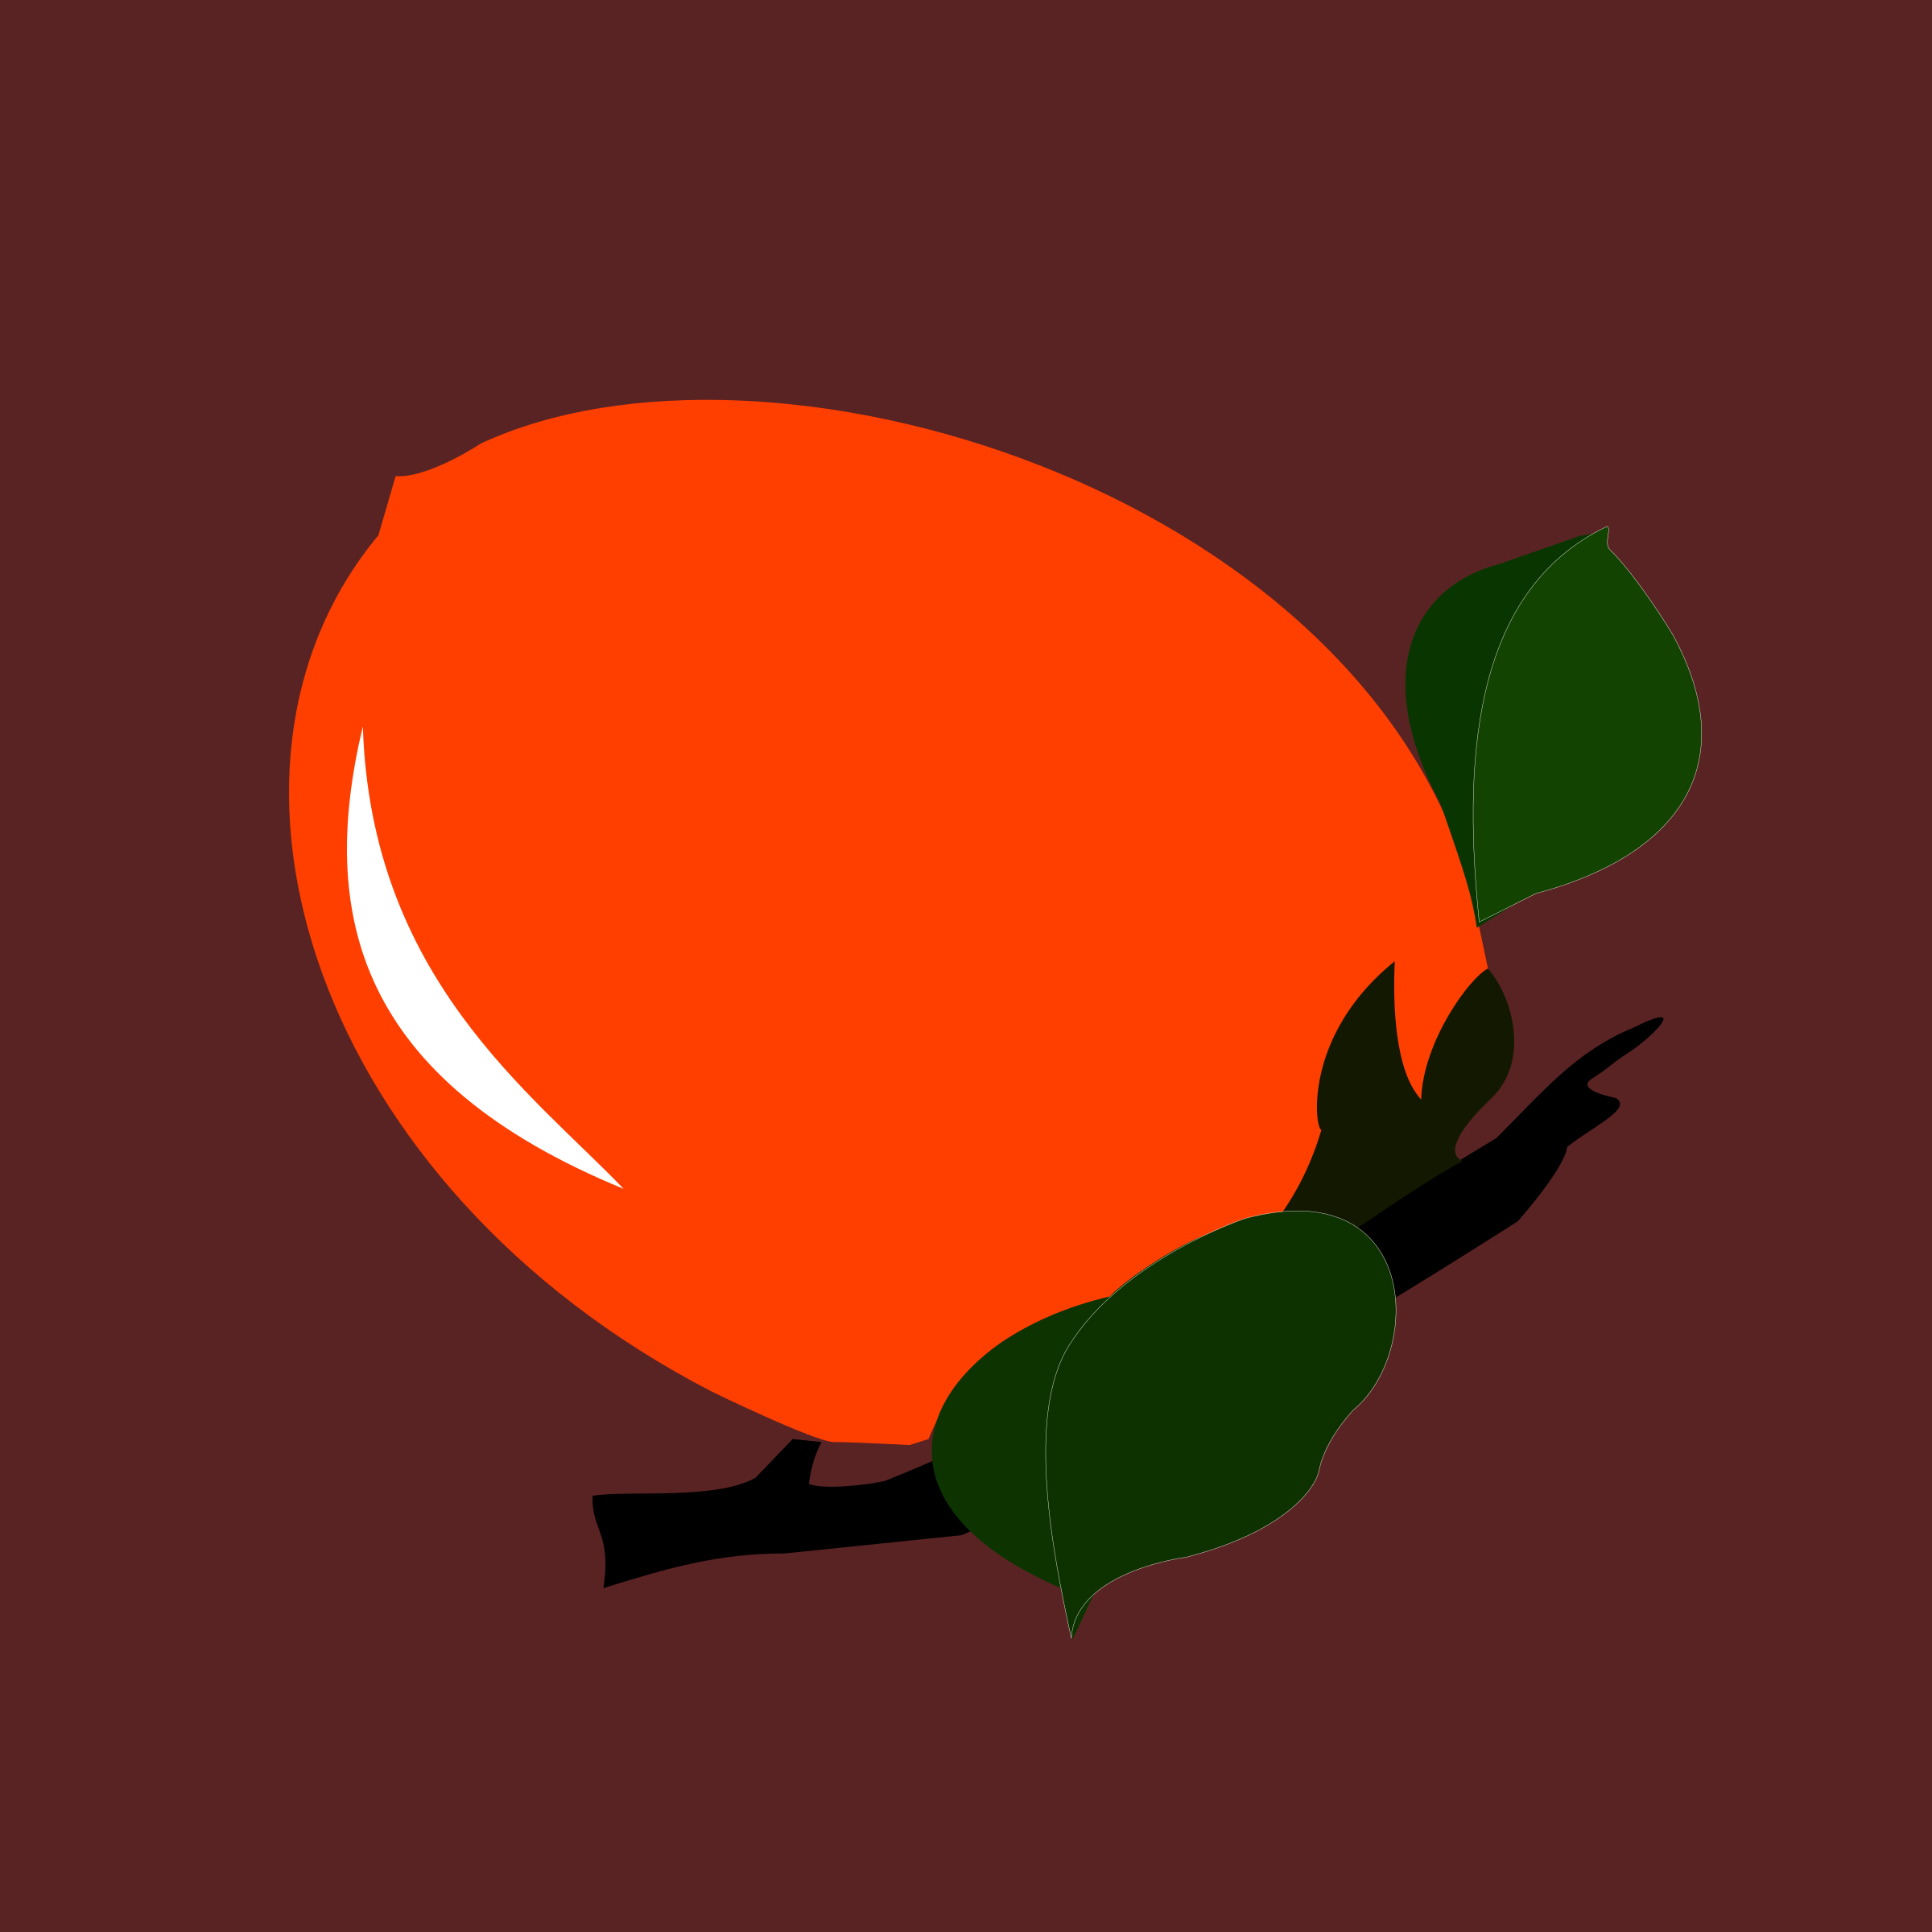 BIG IMAGE (PNG) - Persimmon Clipart